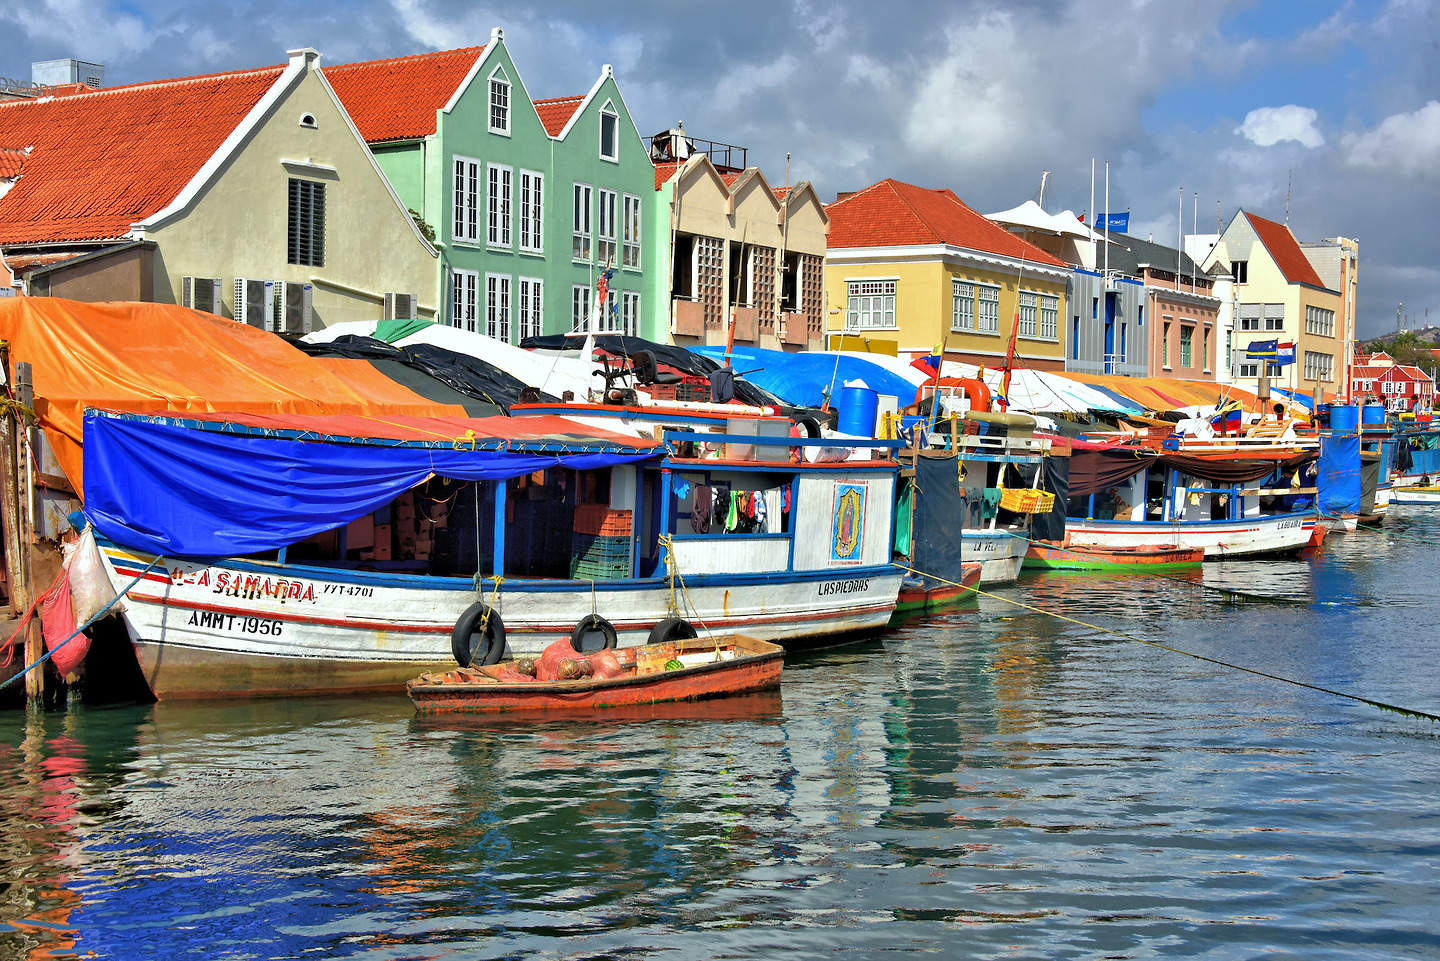 Floating Market in Punda, Eastside of Willemstad, Curaçao - Encircle Photos